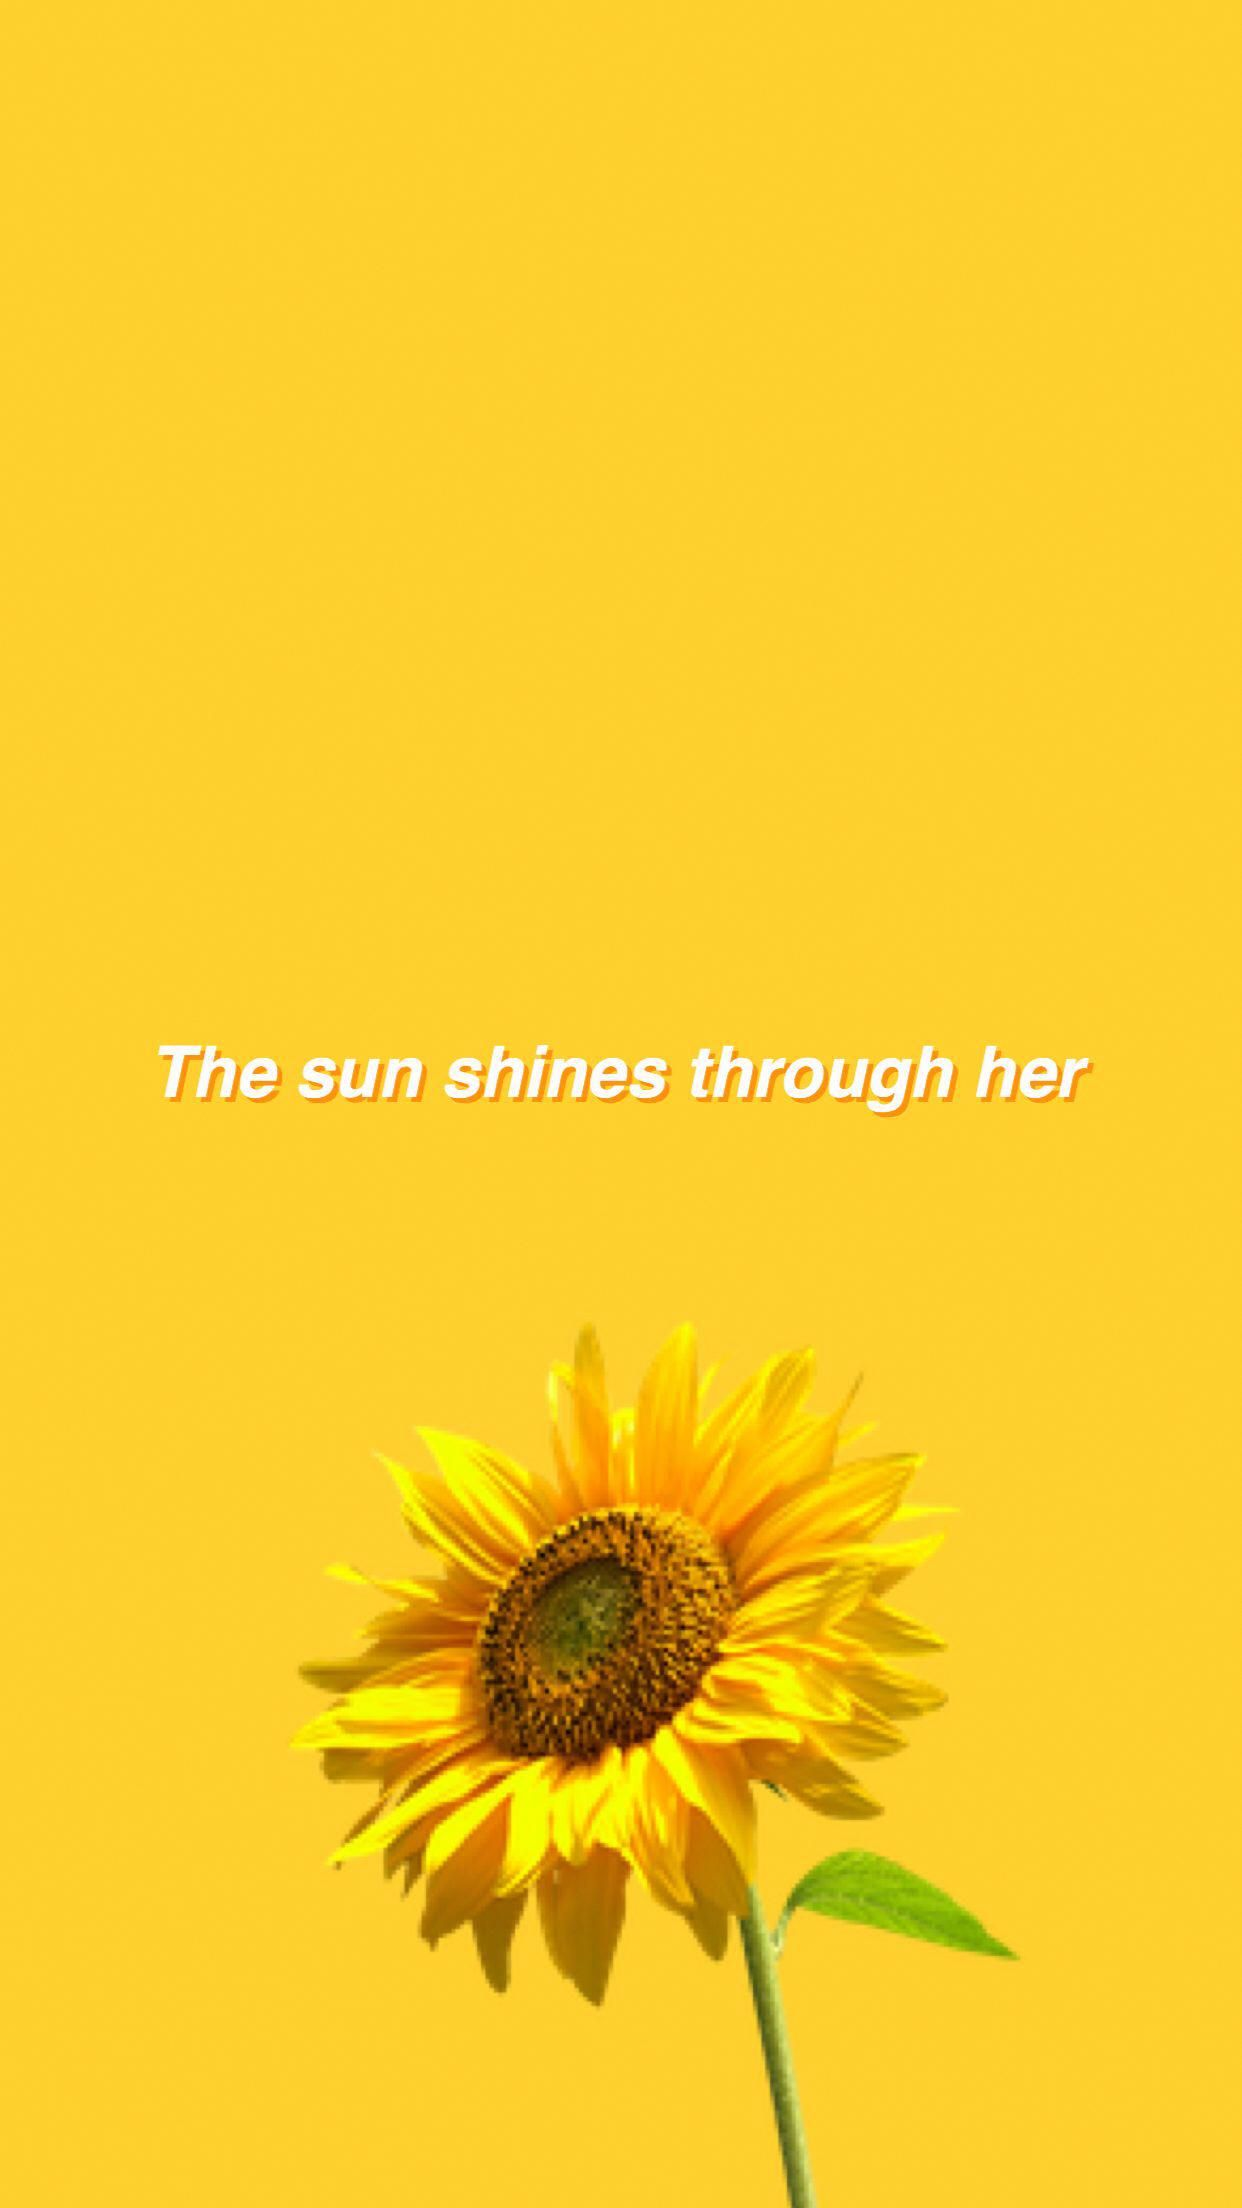 Flower Aesthetic Yellow Wallpaper Yellow Background 2 Quotes